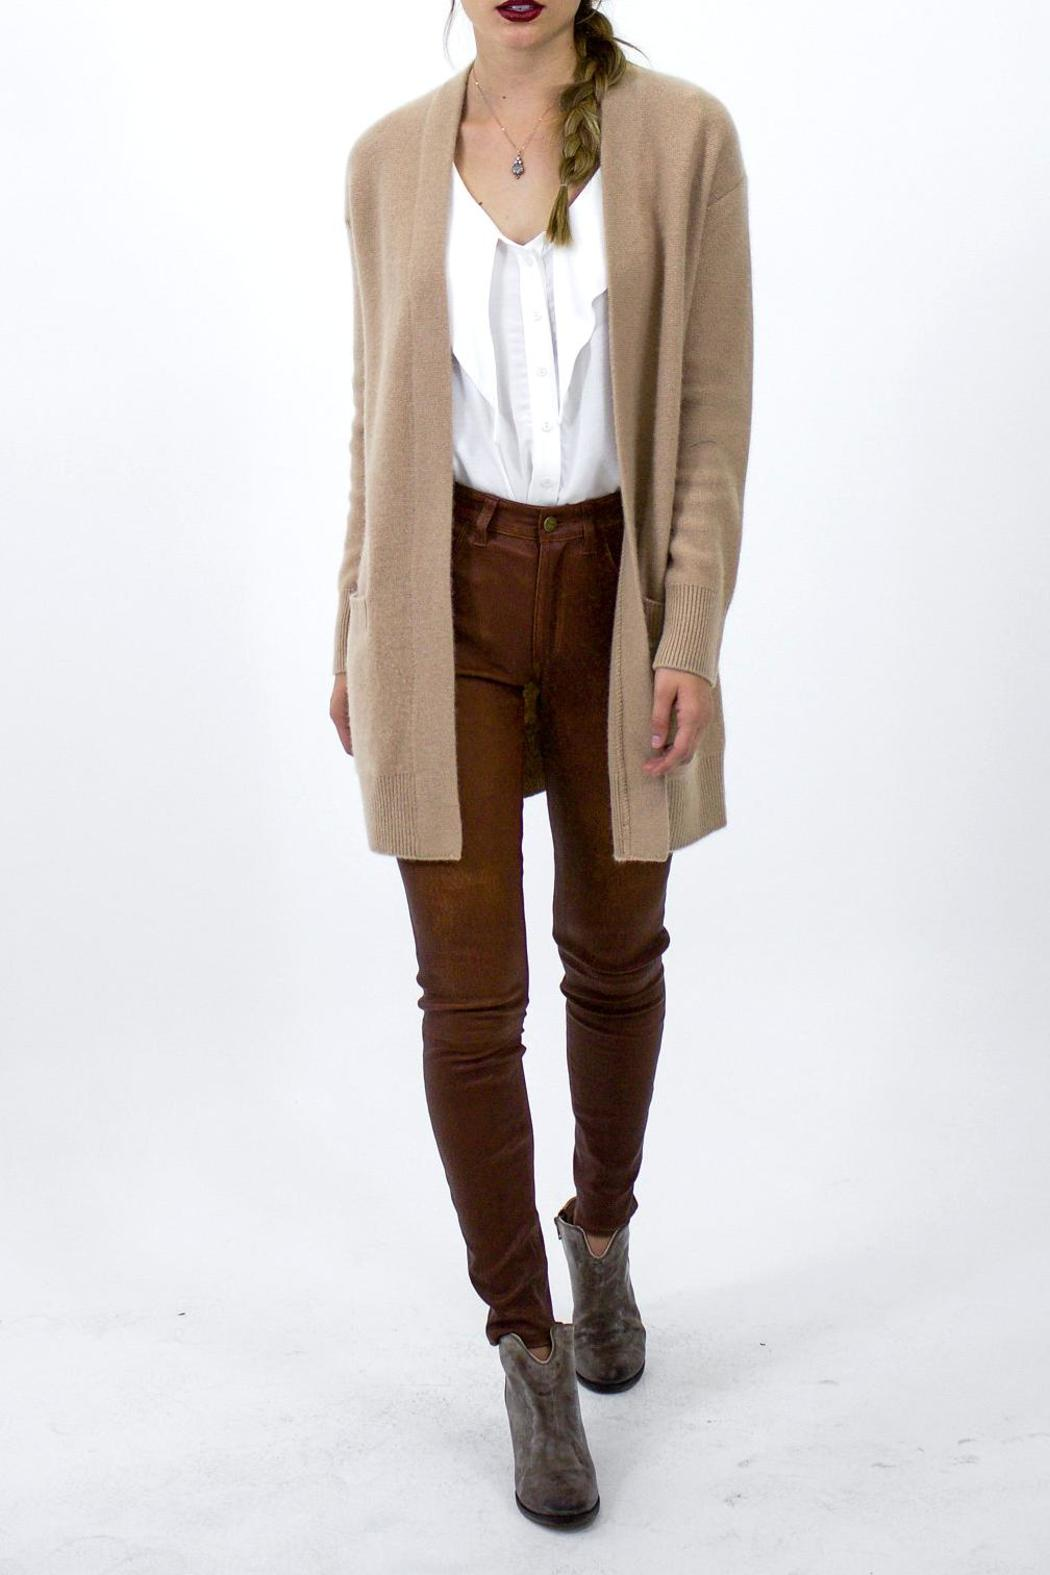 Vince Camel Cashmere Cardigan from Los Angeles by Tags Boutique ...